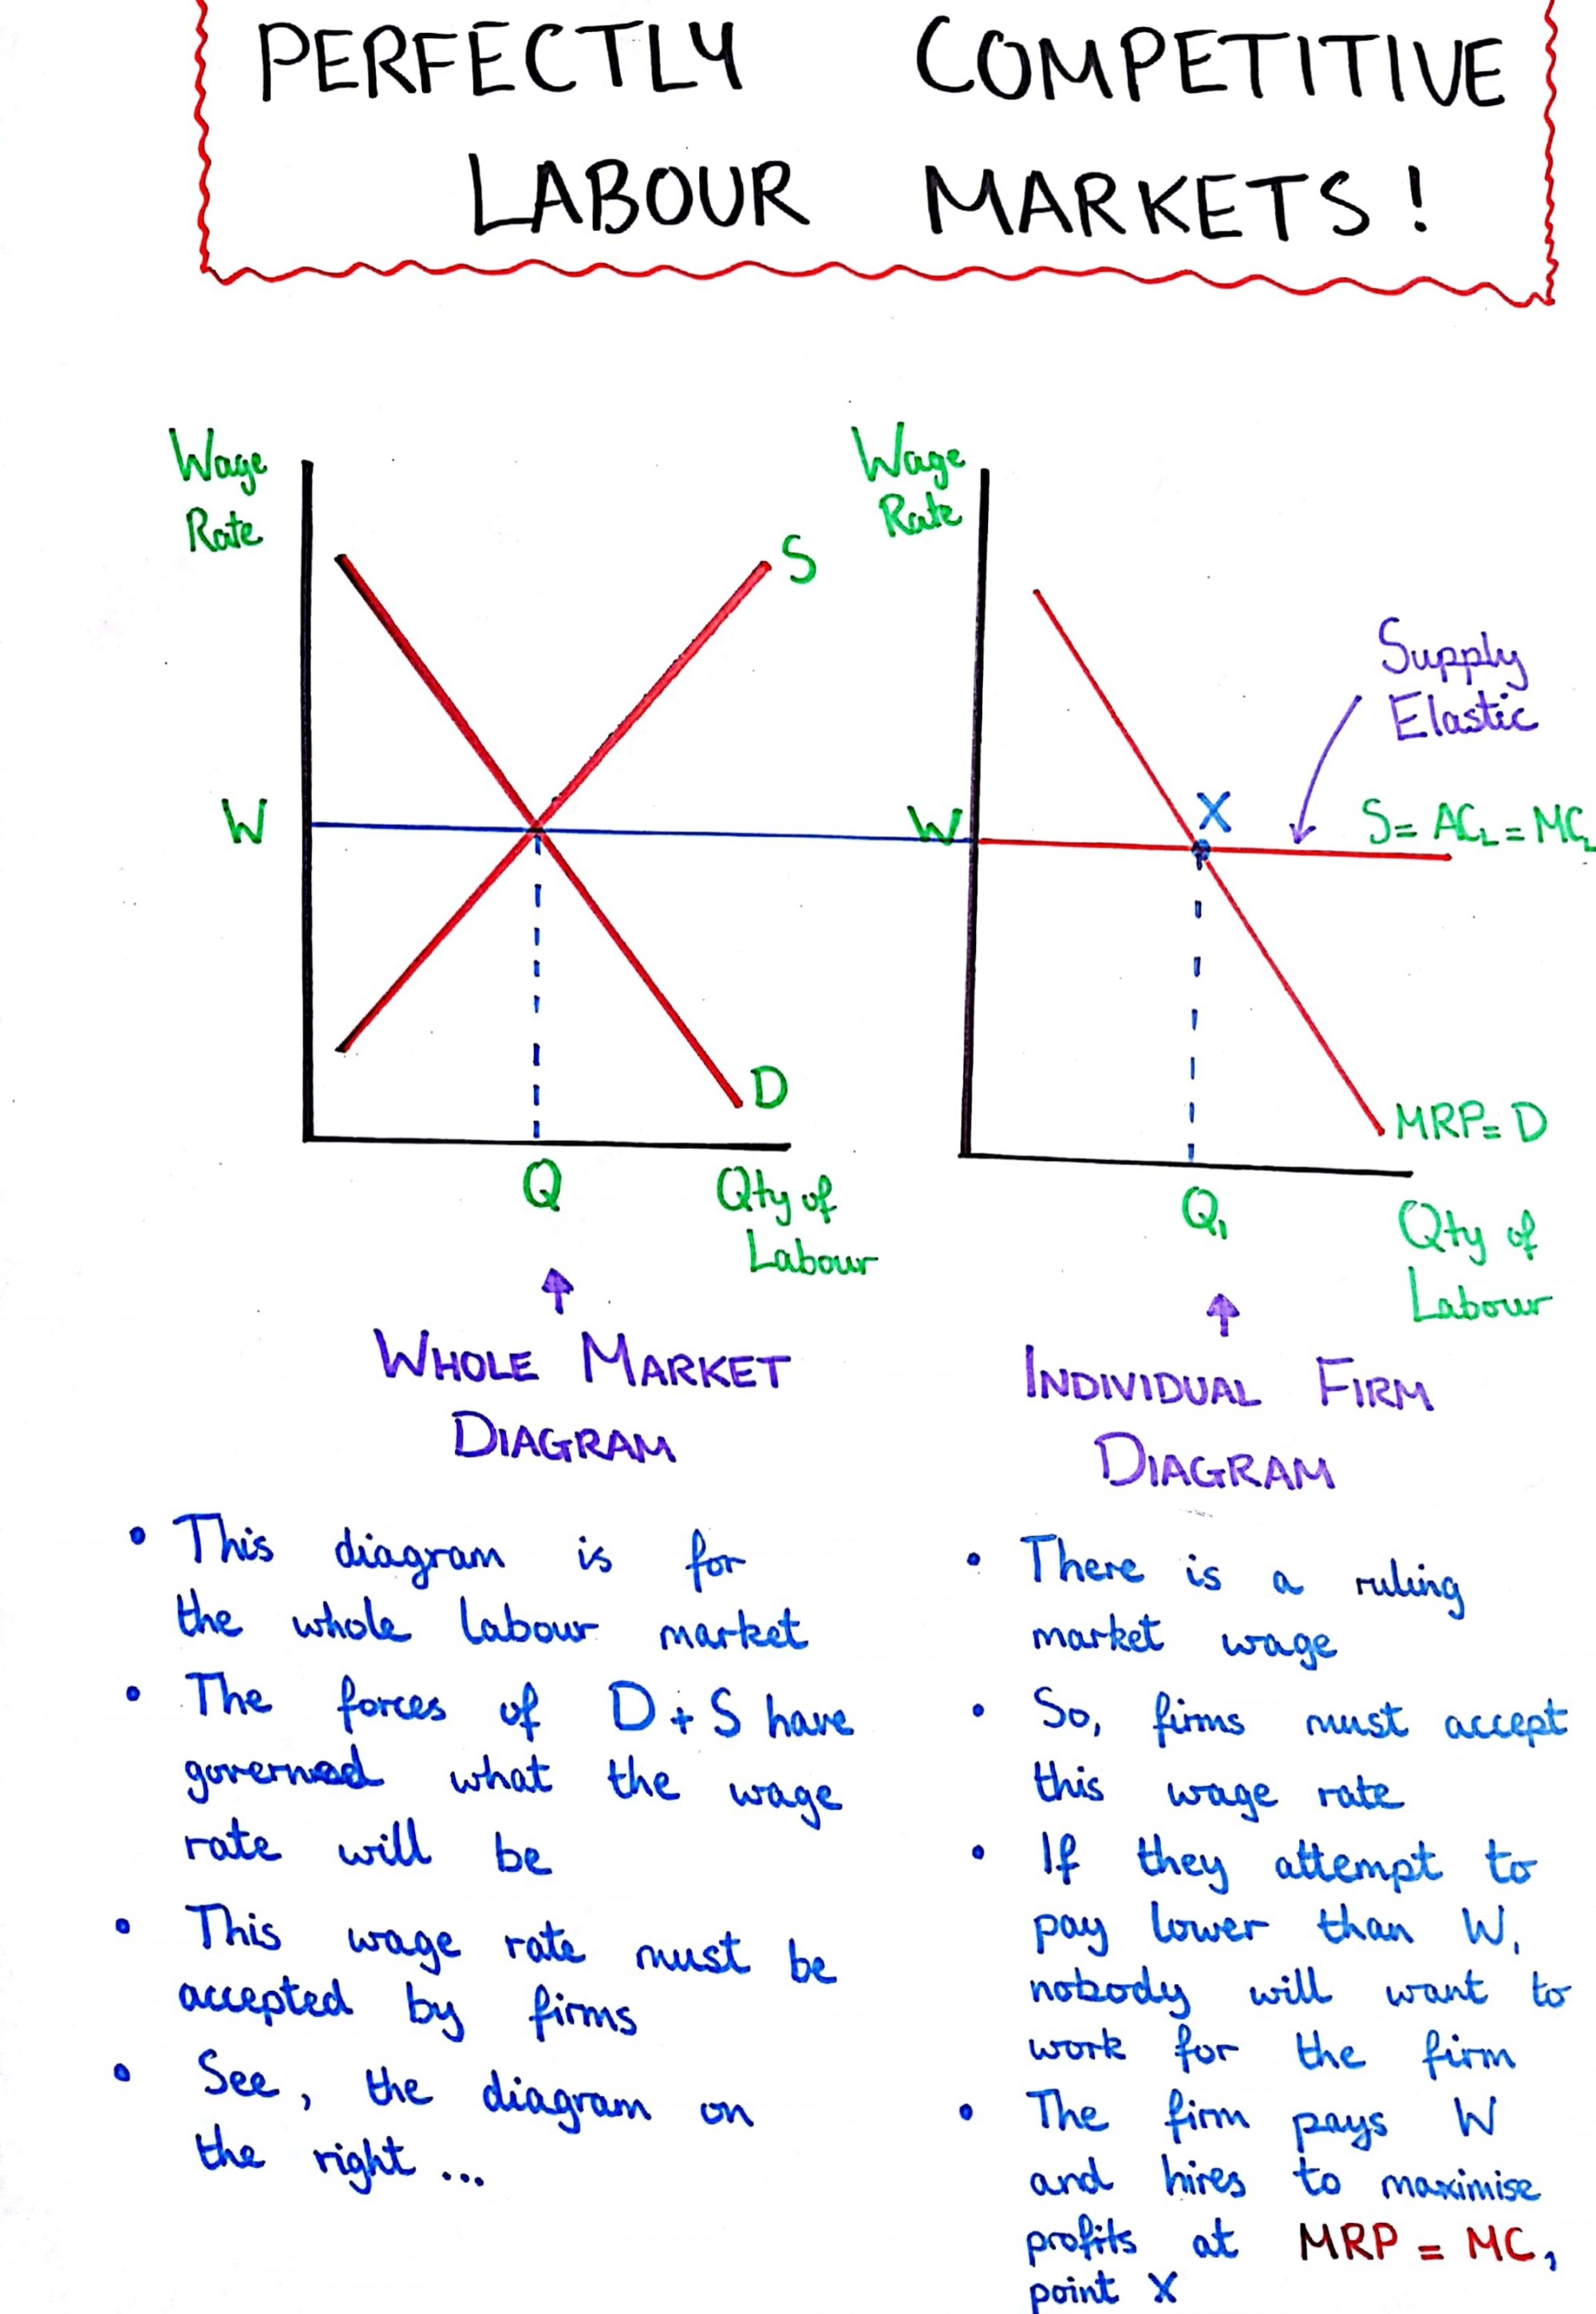 hight resolution of perfectly competitive labour markets ruling market wage and efficient allocation of labour resources labour